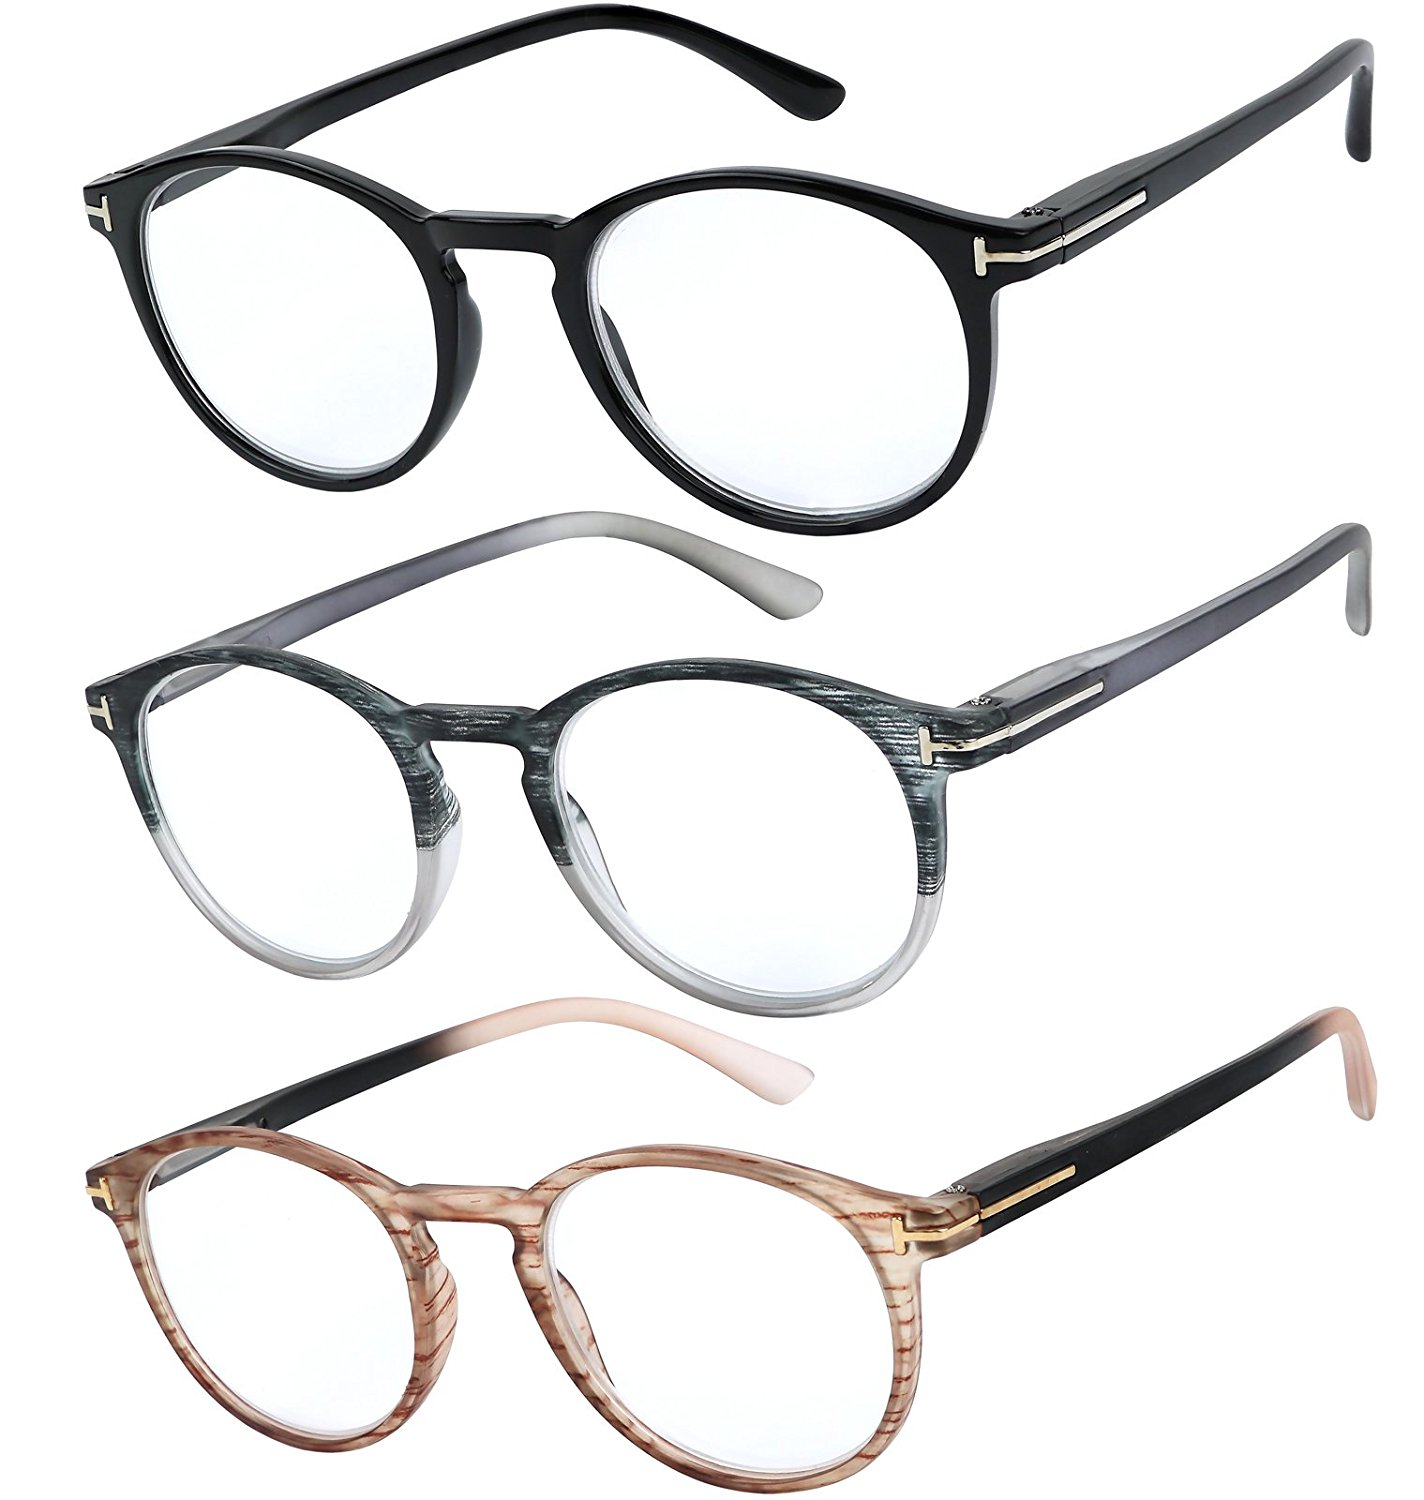 cae3ae07875 Get Quotations · Reading Glasses Set of 3 Great Value Quality Fashion  Readers Spring Hinge Glasses for Reading Men